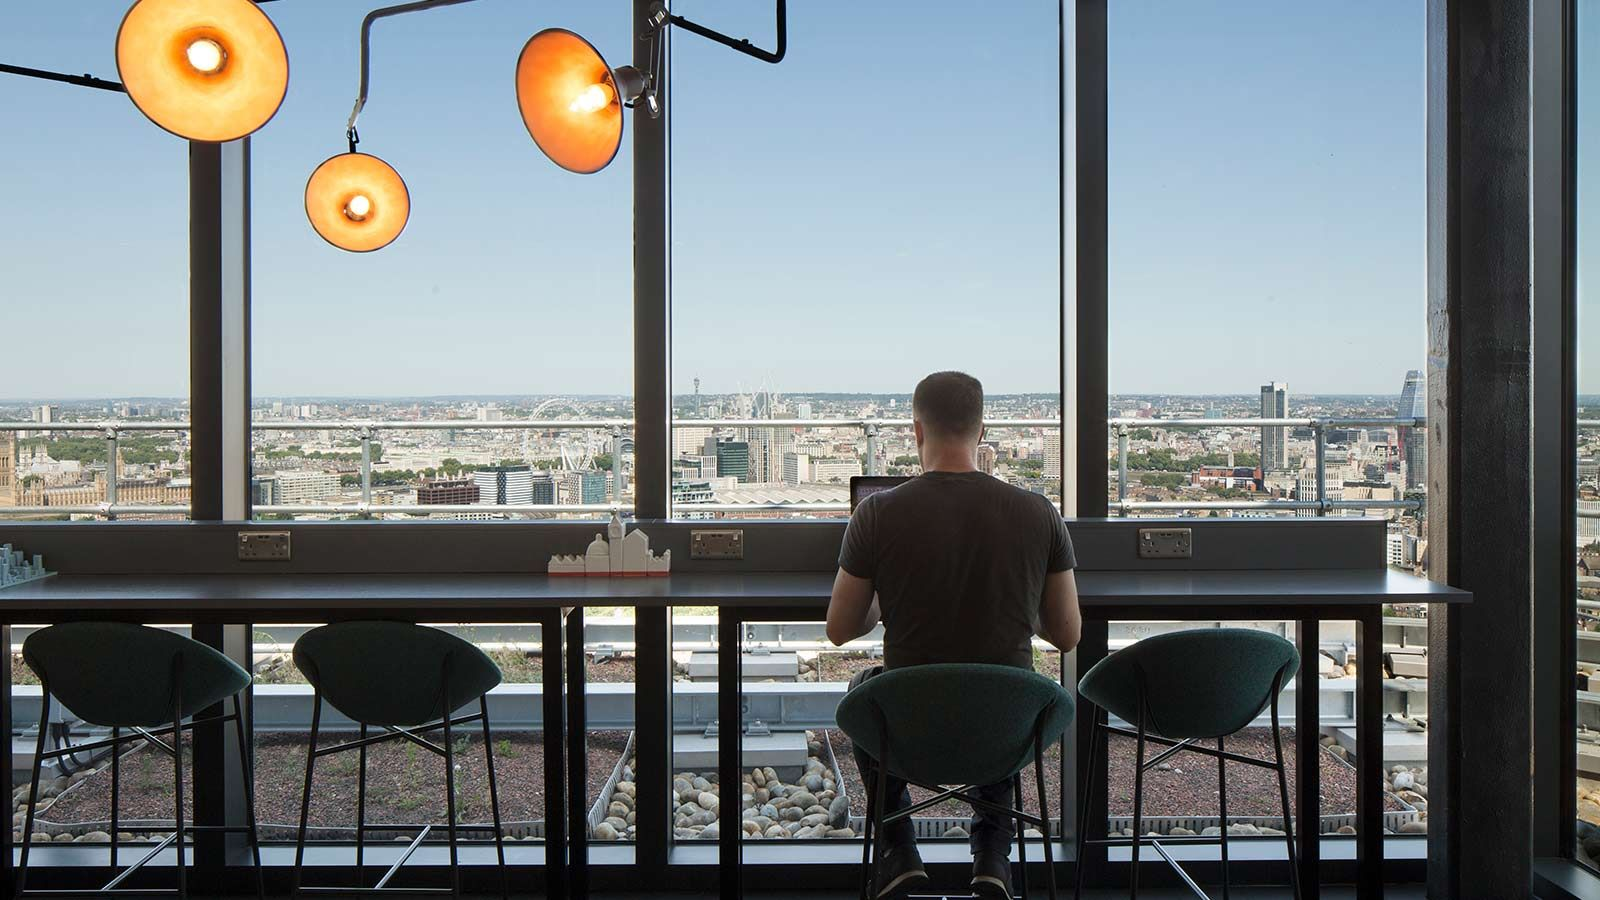 Resident working on laptop in Sky lounge - Mace Group